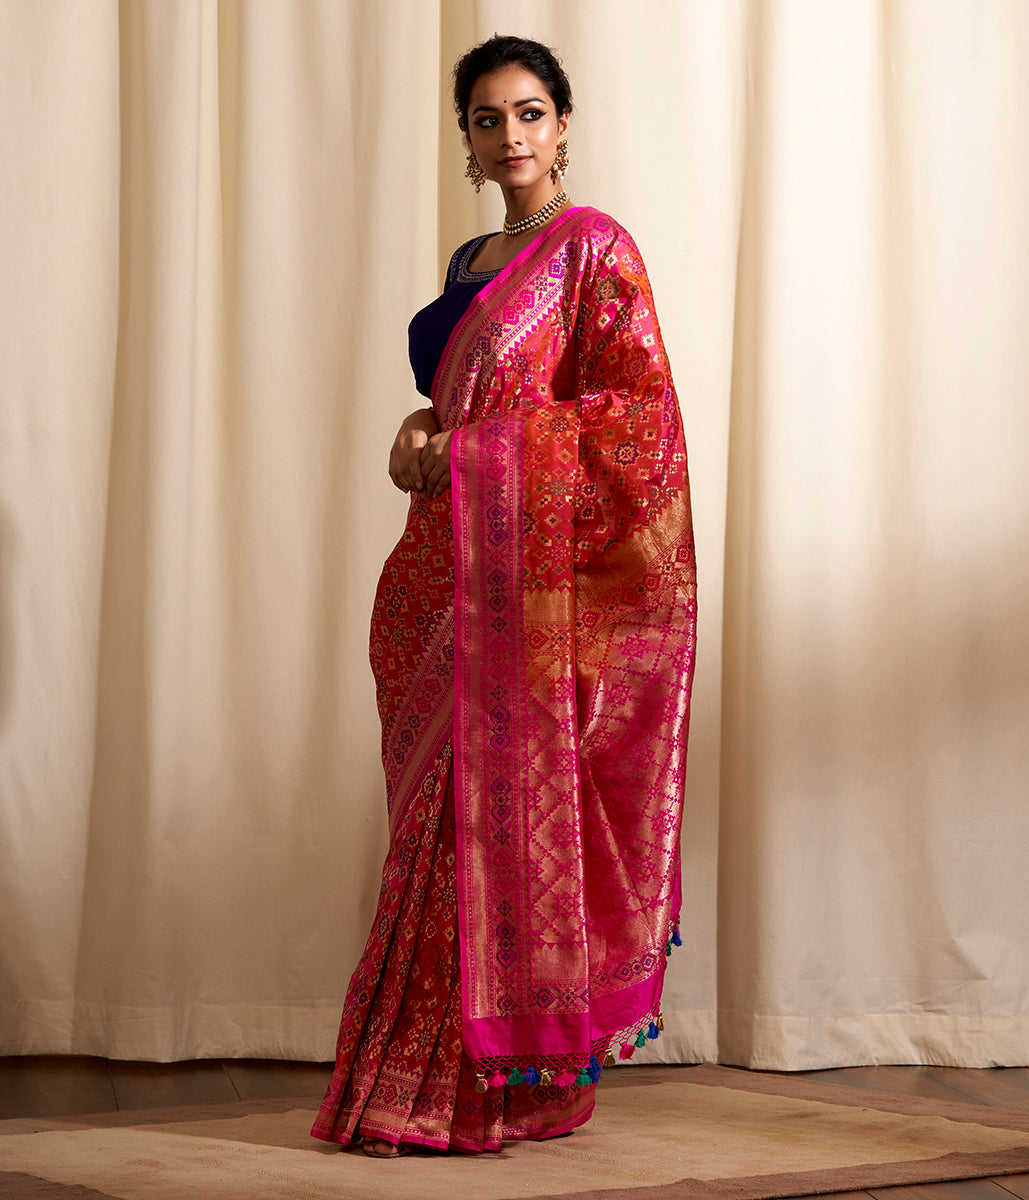 Handwoven Banarasi Patola Saree in Hot Pink